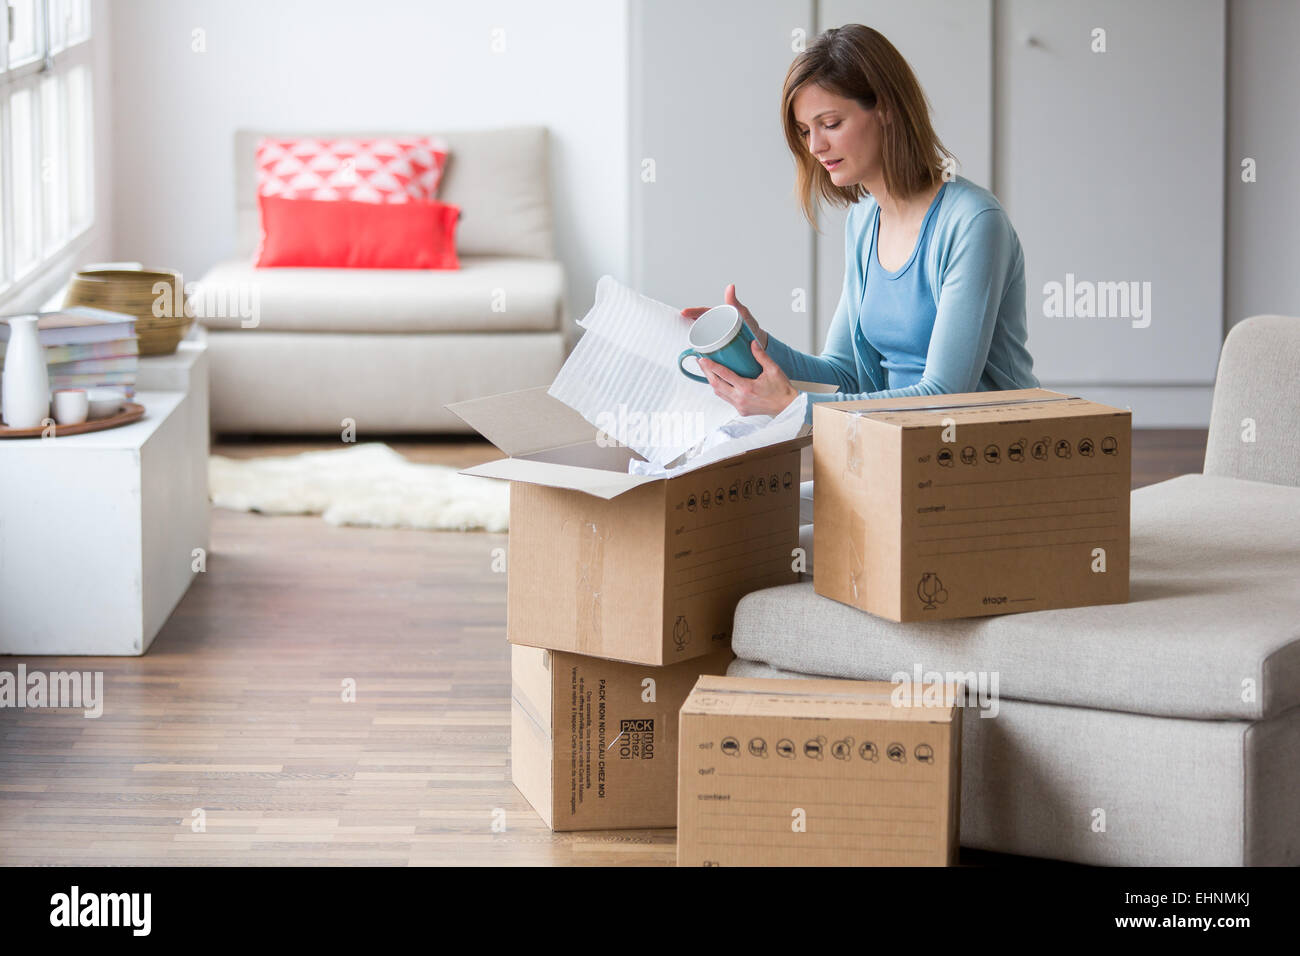 Woman carrying moving boxes in her new home. - Stock Image